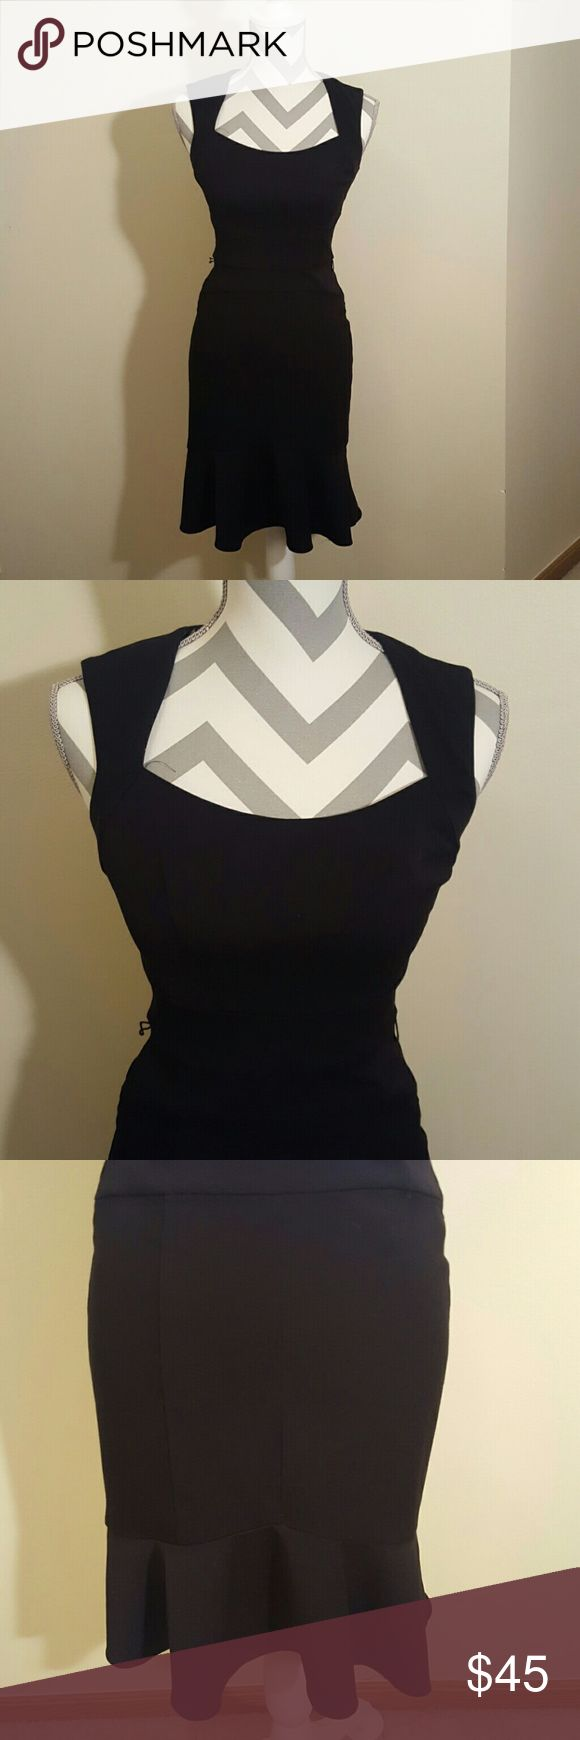 White House Black Market Trumpet Dot Shift Dress White house black market brand in a size 00. This dress is stunning! It is black with a black+white polka dot satin feeling lining. It has small belt loops (belt not included), a mermaid/Trumpet bottom, and back zipper. Pictures do not do this beauty justice! Smoke free home and fast shipping. Thank you for checking out my closet. White House Black Market Dresses